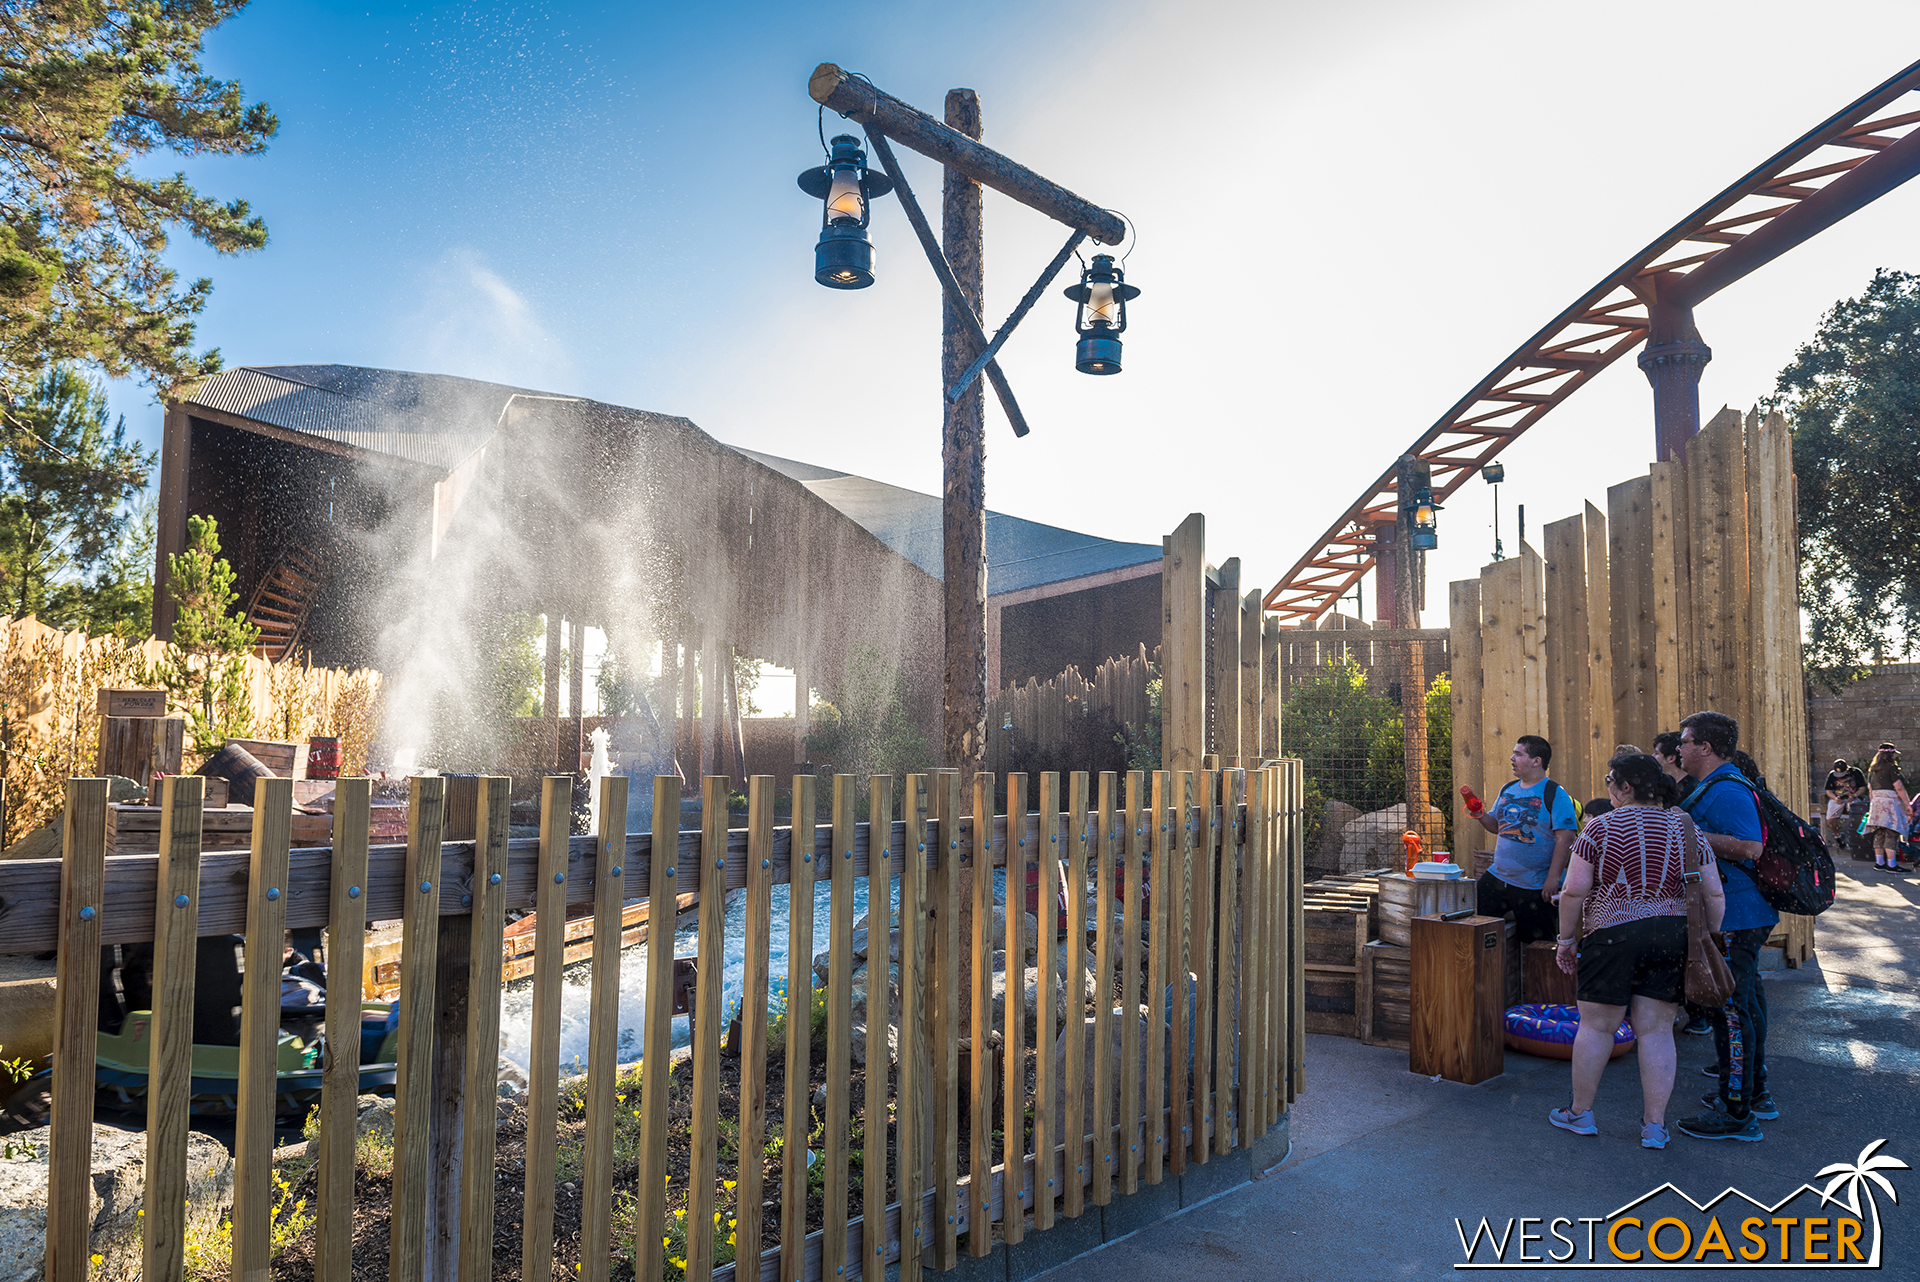 Guests along the outside control the blasts, and the experience is free to play.  But beware—sometimes, the system backfires, and the bystanders are the ones who are sprayed!